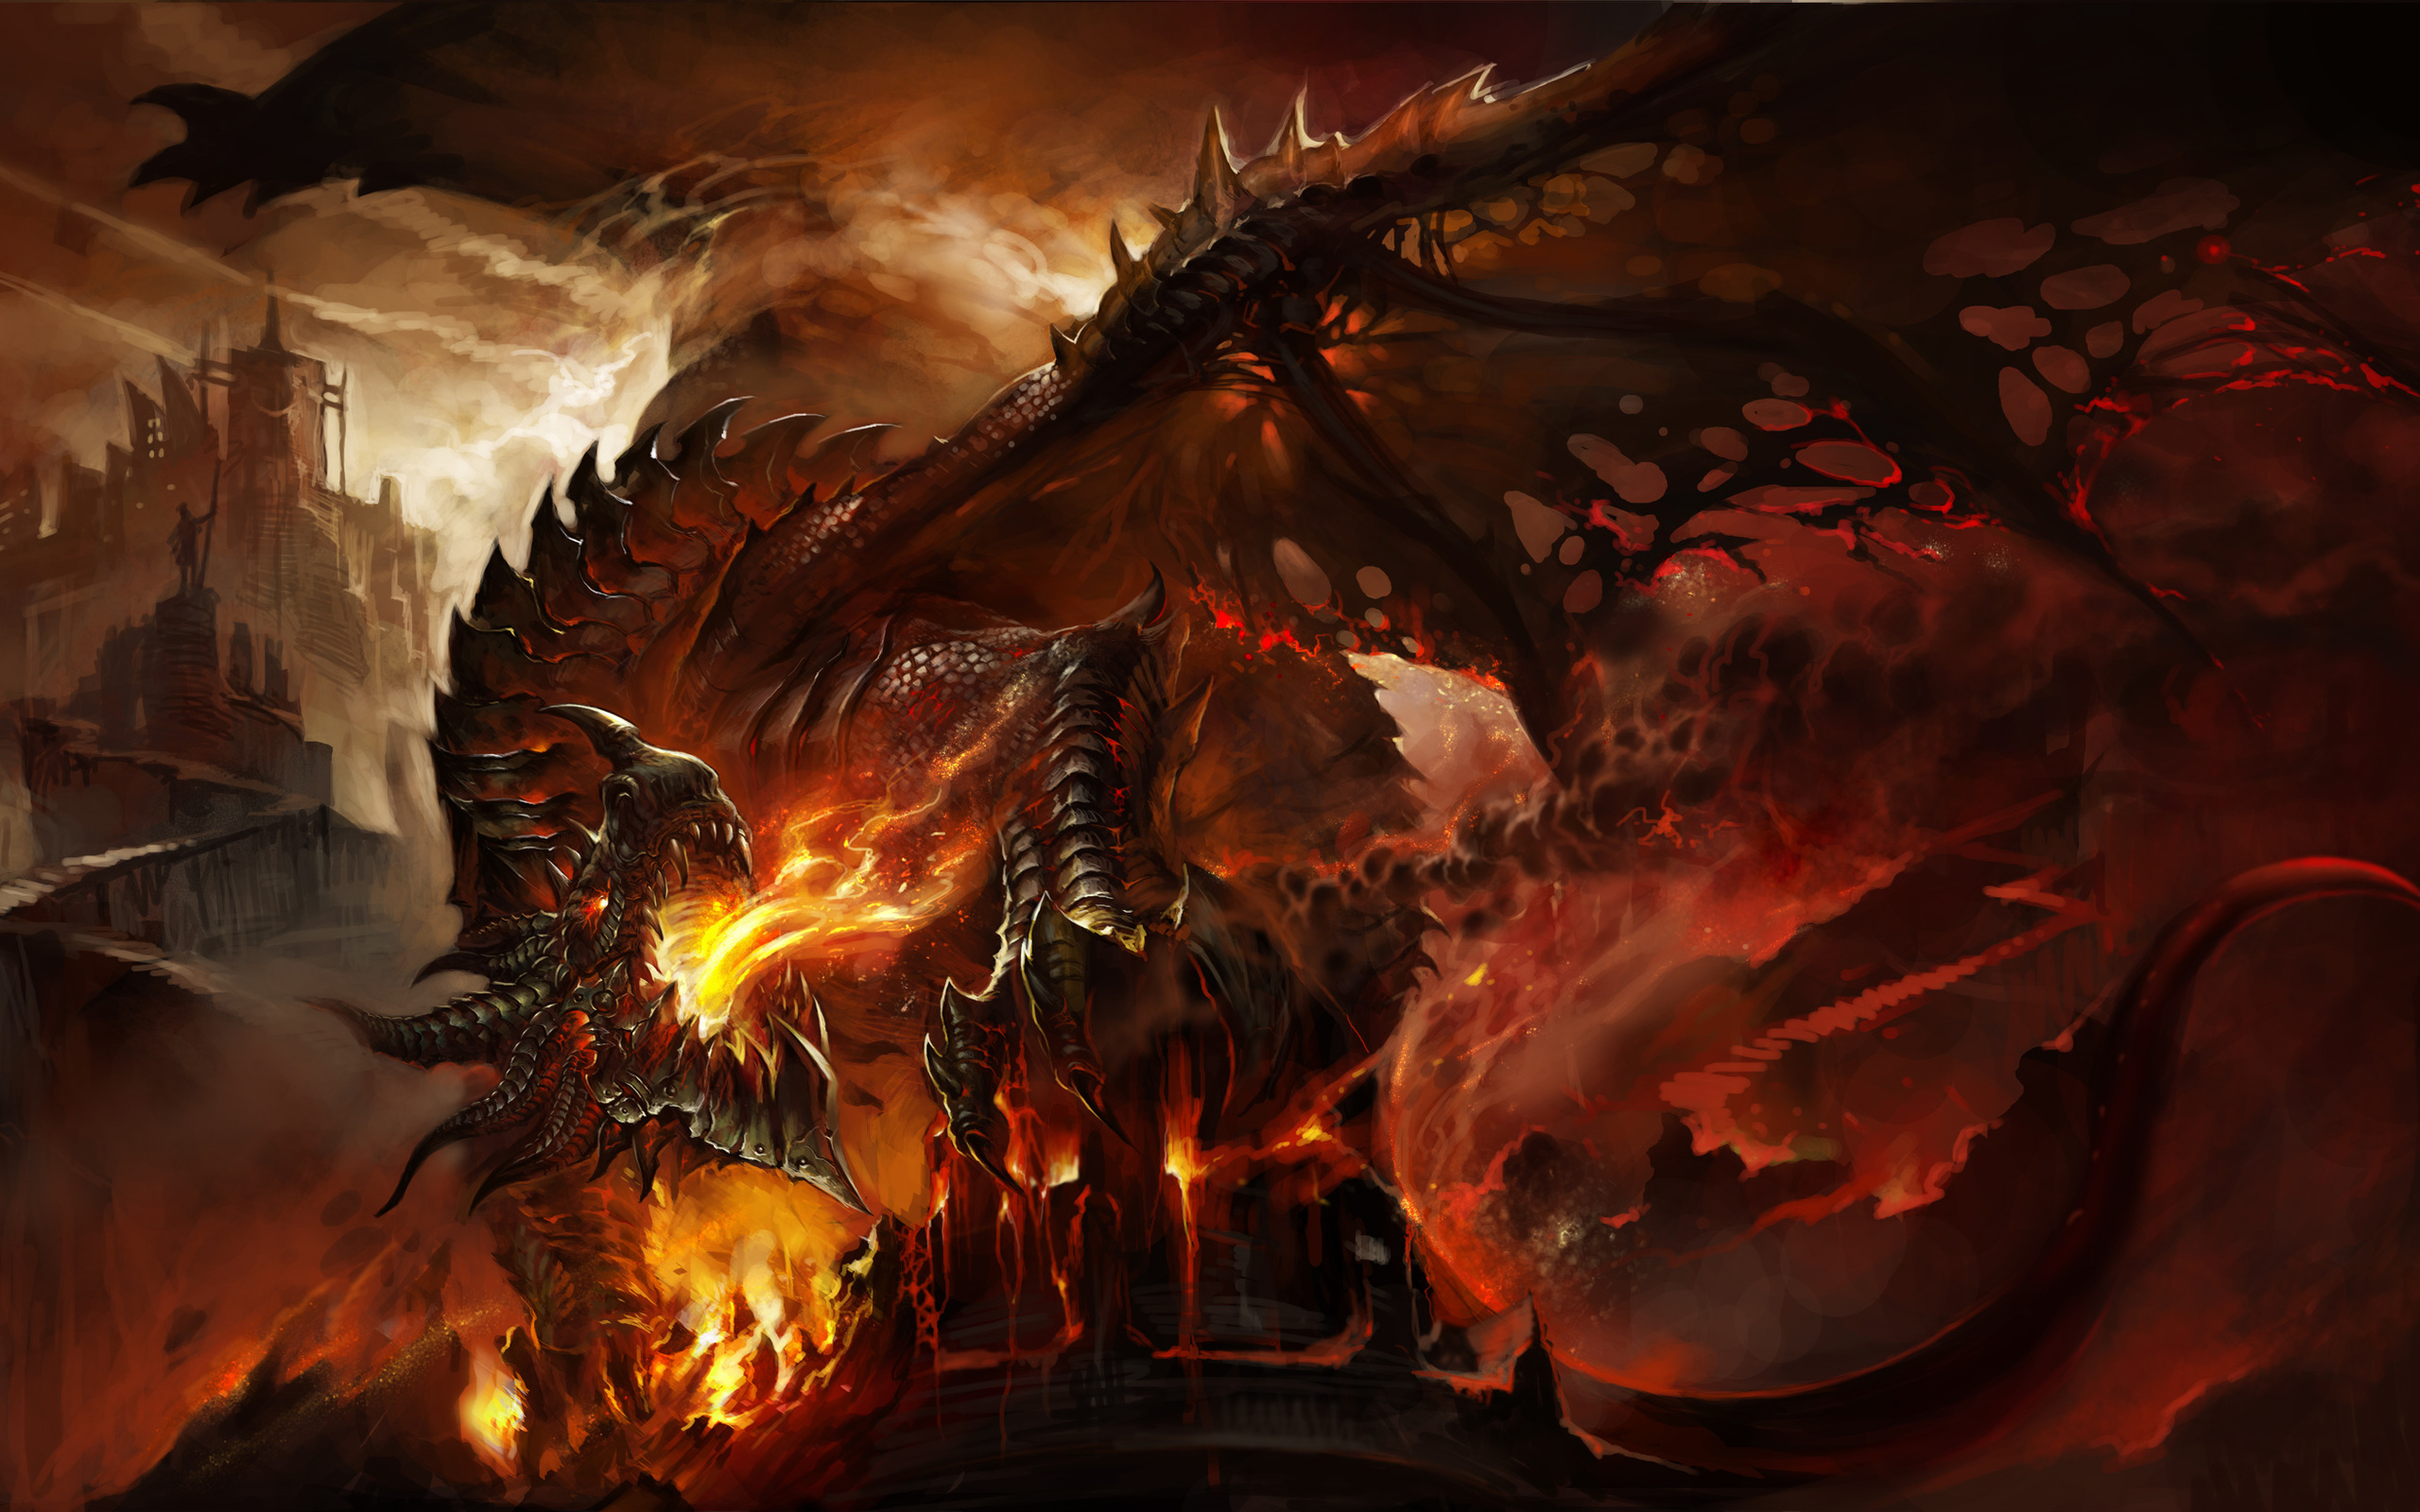 City Deathwing World Of Warcraft Dragon Fantasy Fire 2560x1600